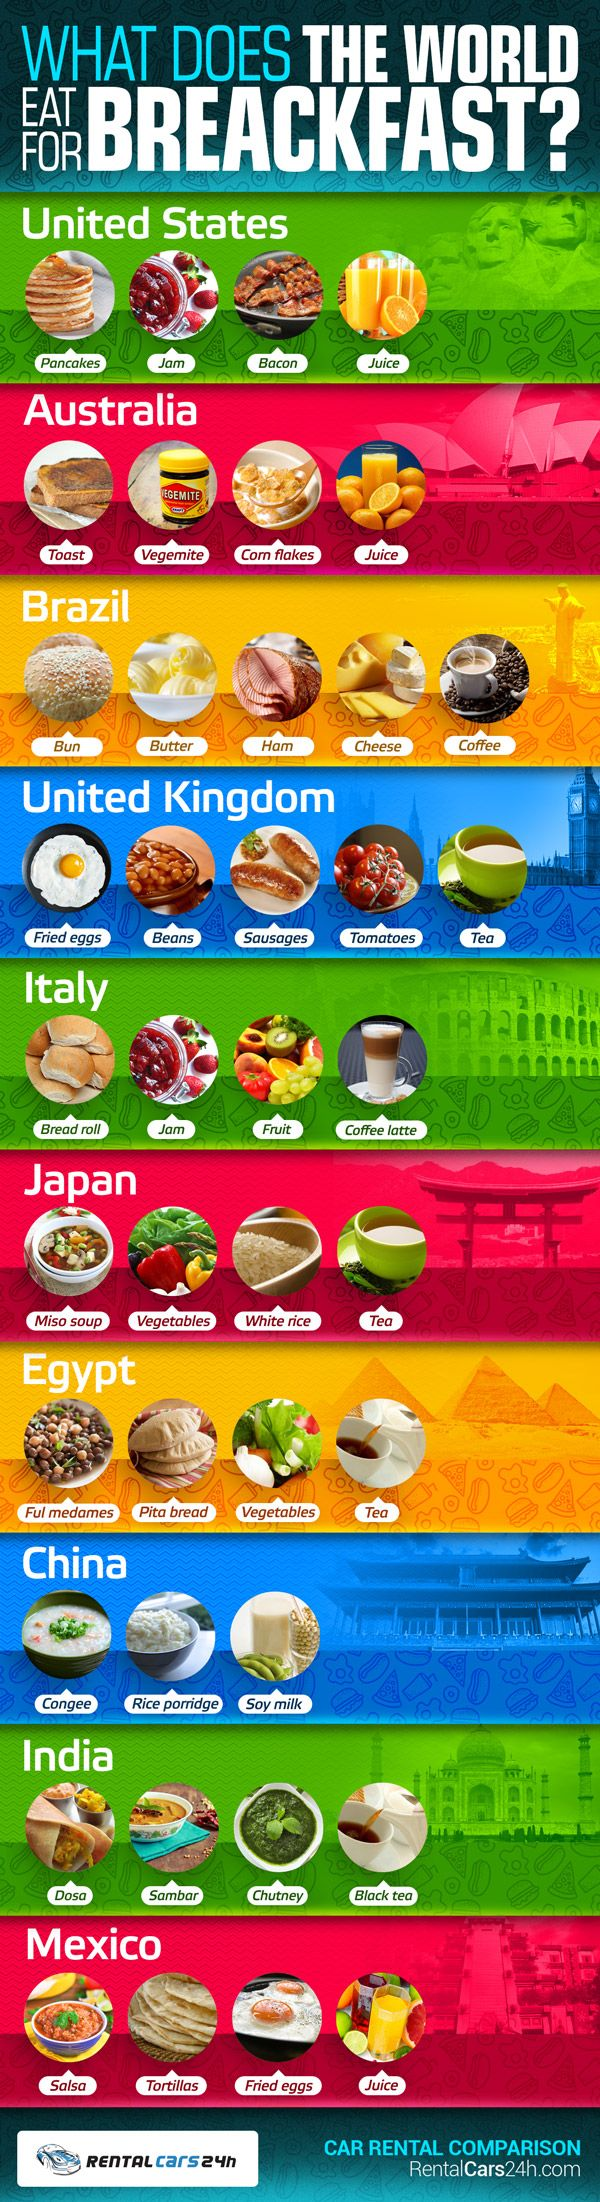 Infographic: What Does The World Eat For Breakfast? #infographic #breakfast #multiculturalfood